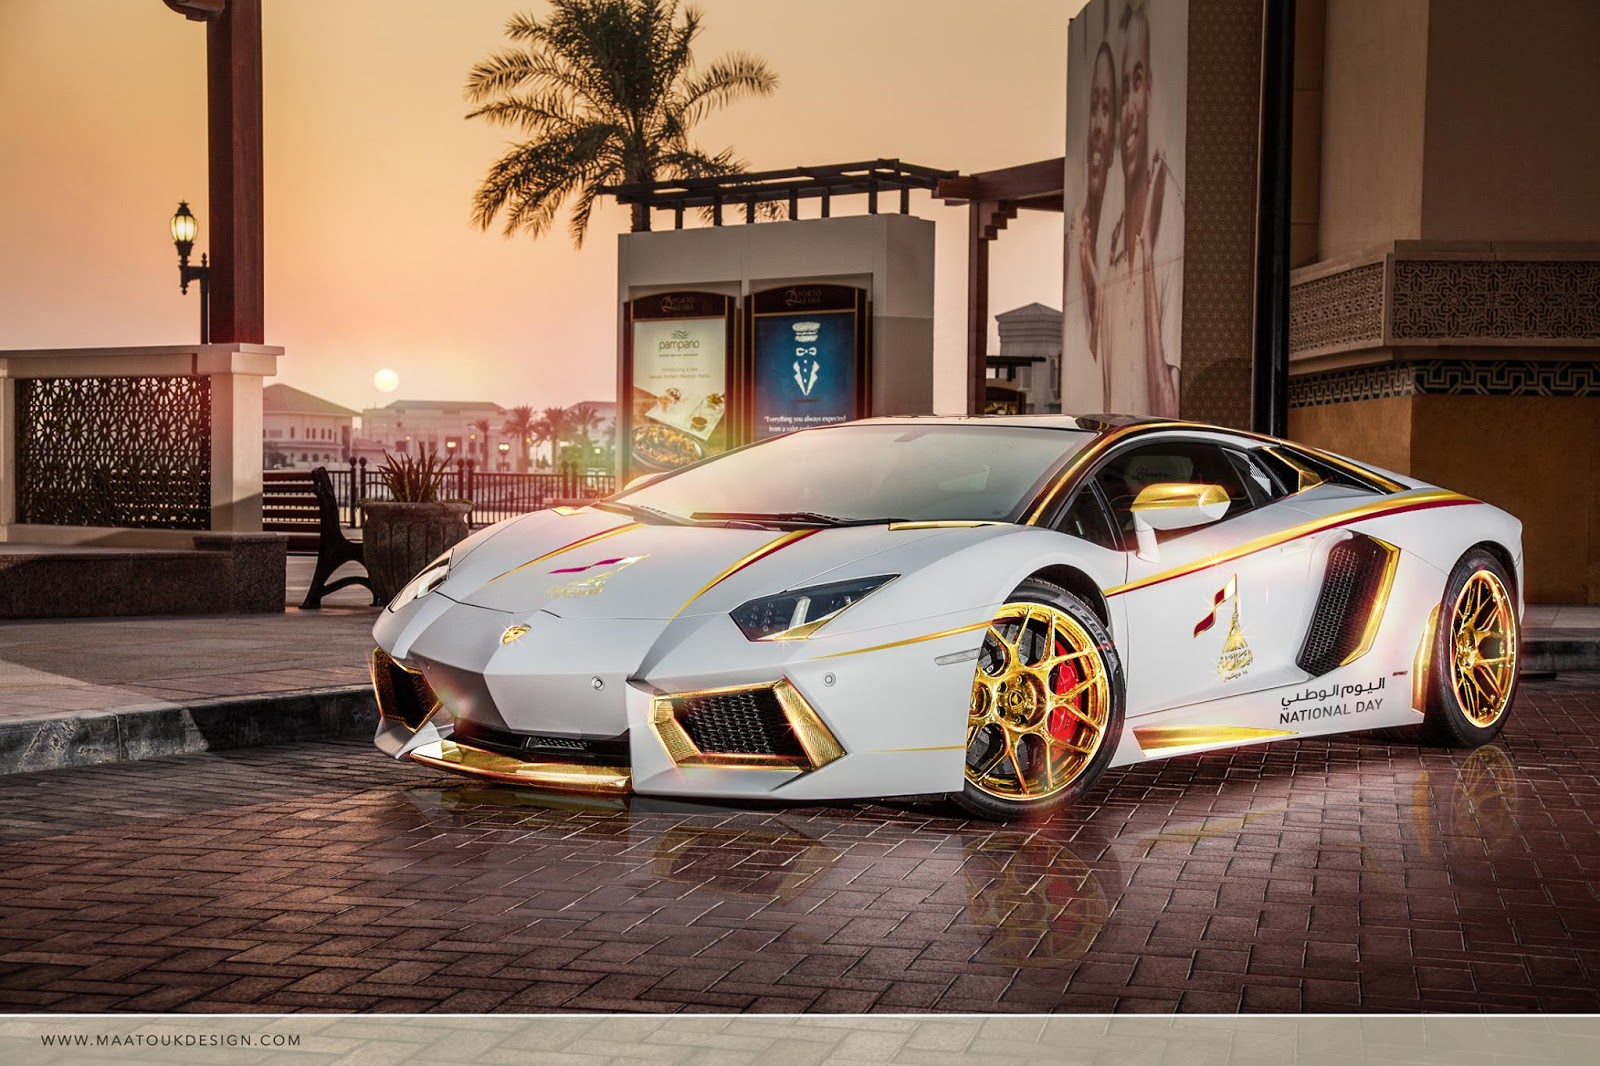 """Golden Cars: Gold Plated Lamborghini Aventador Is """"1 Of 1"""" [w/Video"""